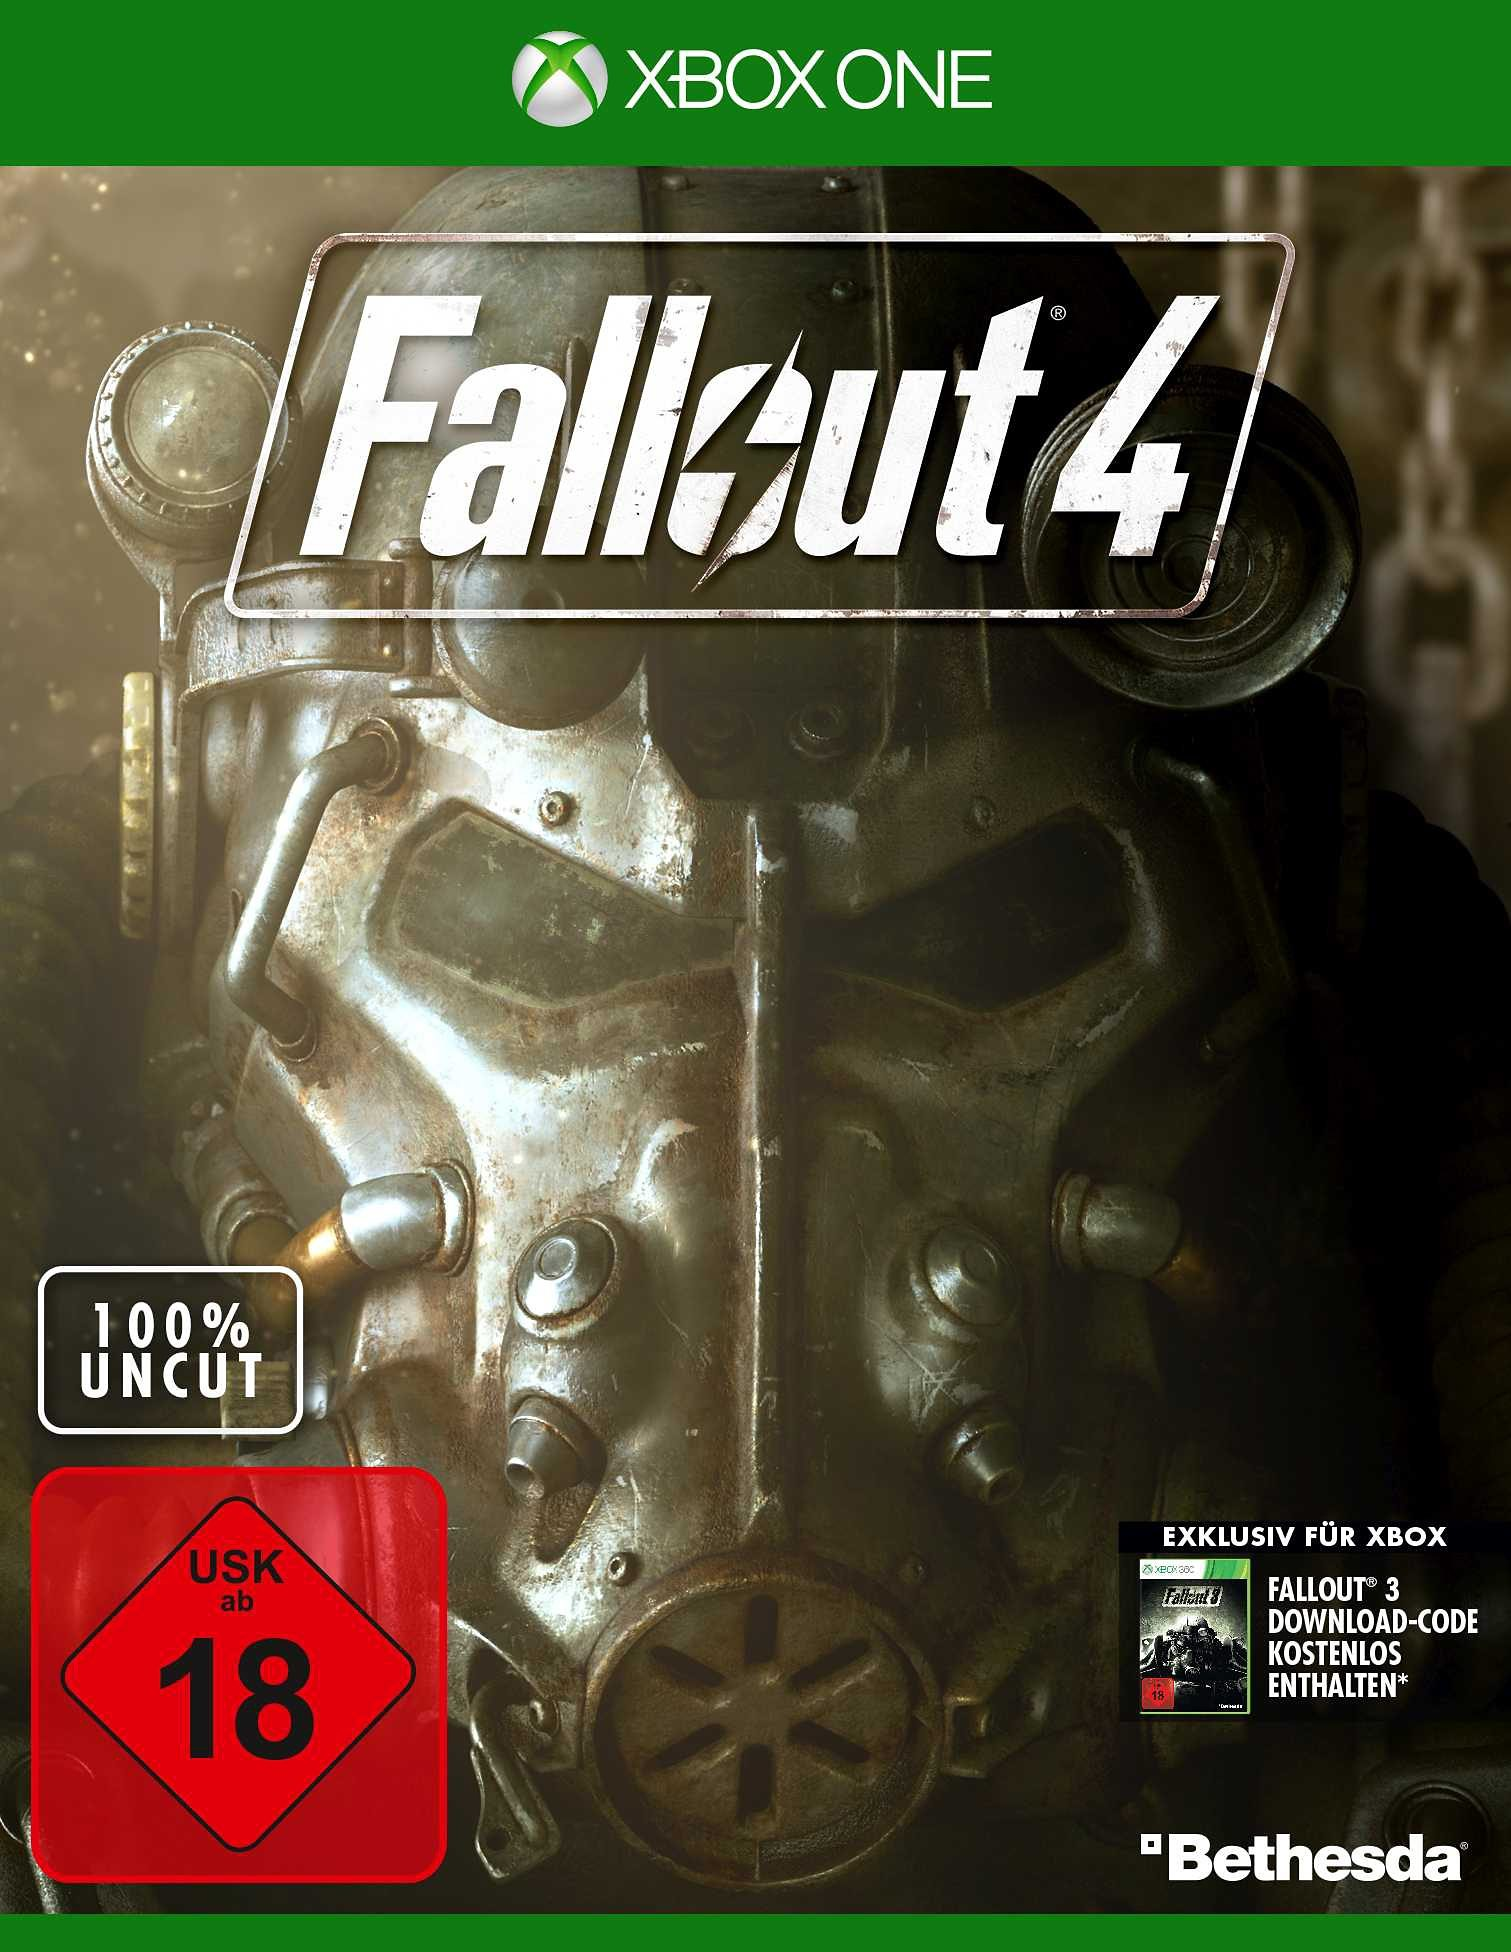 Fallout 4 Uncut Xbox One